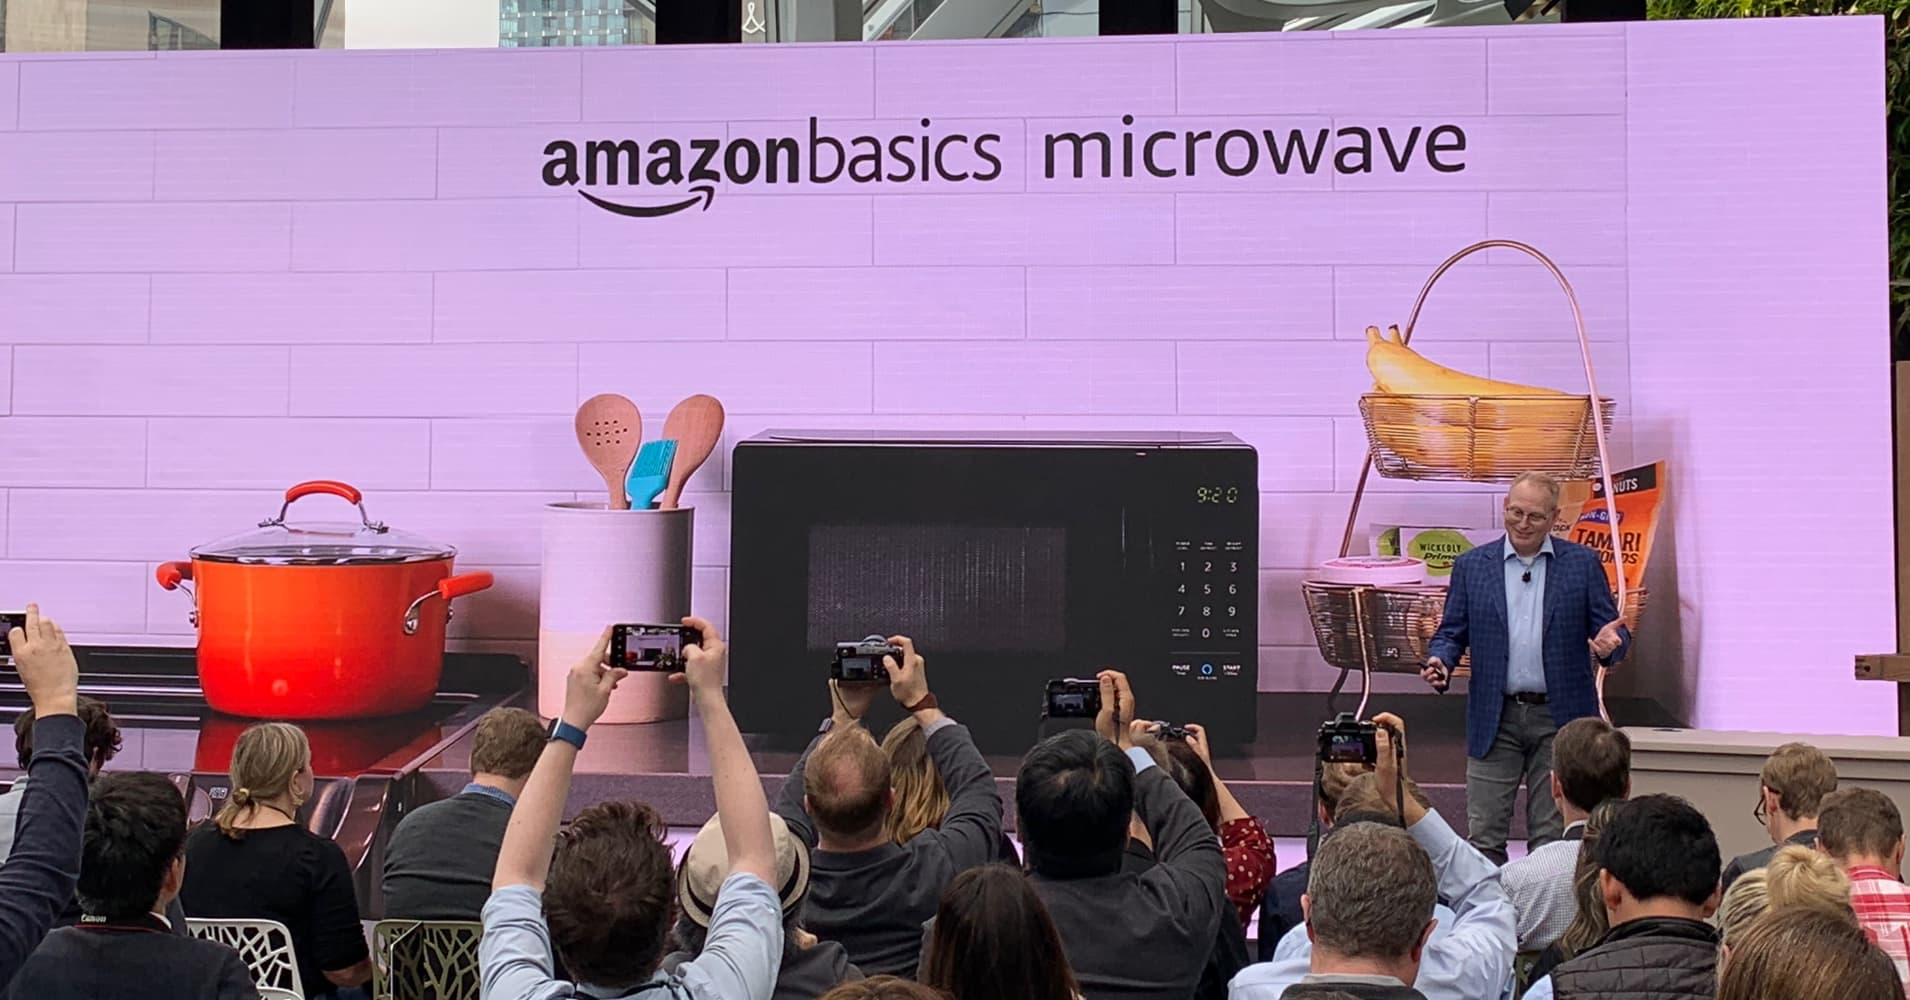 Amazon's big product reveal includes new suite of Echo products, microwave